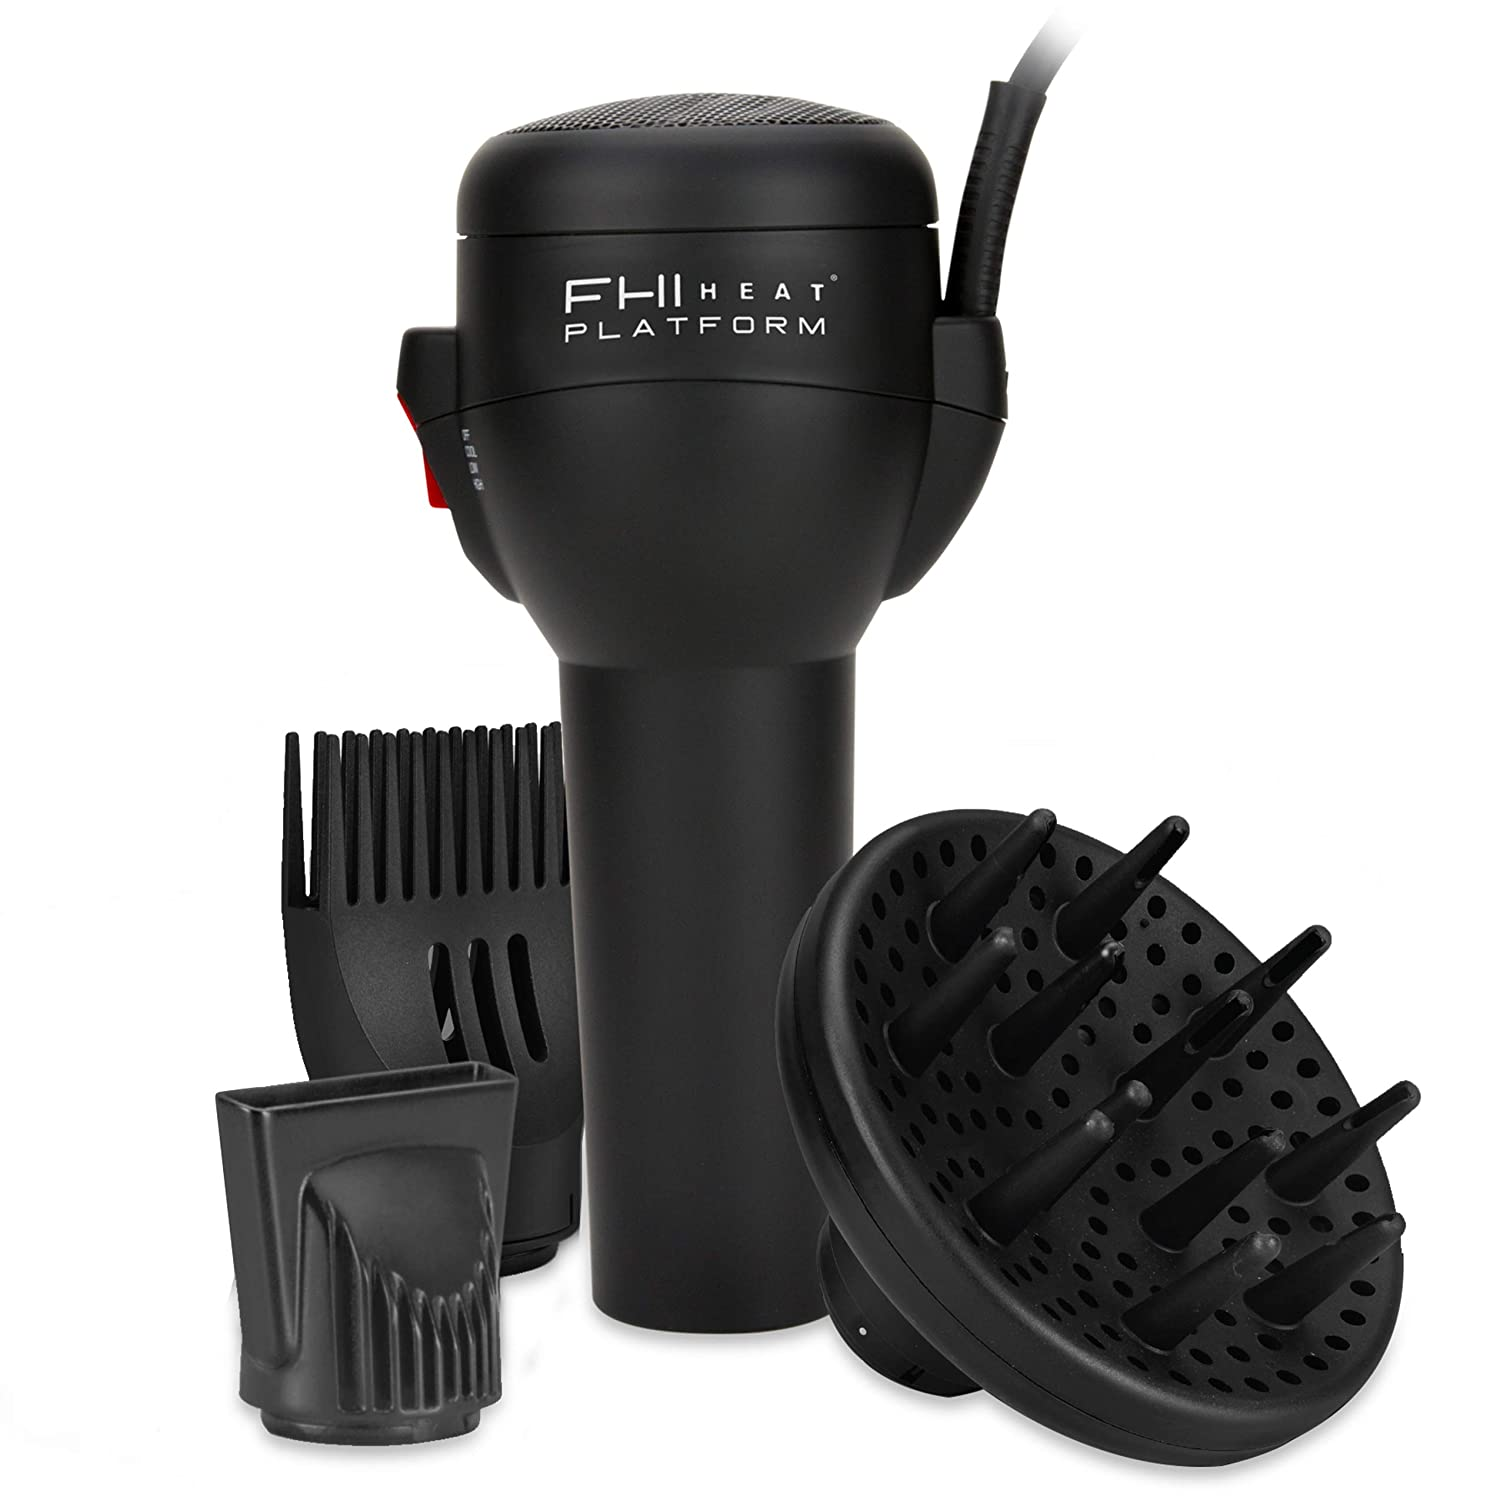 FHI Heat Platform Blow Out Hair Dryer - Handle-less, Ionic & Lightweight